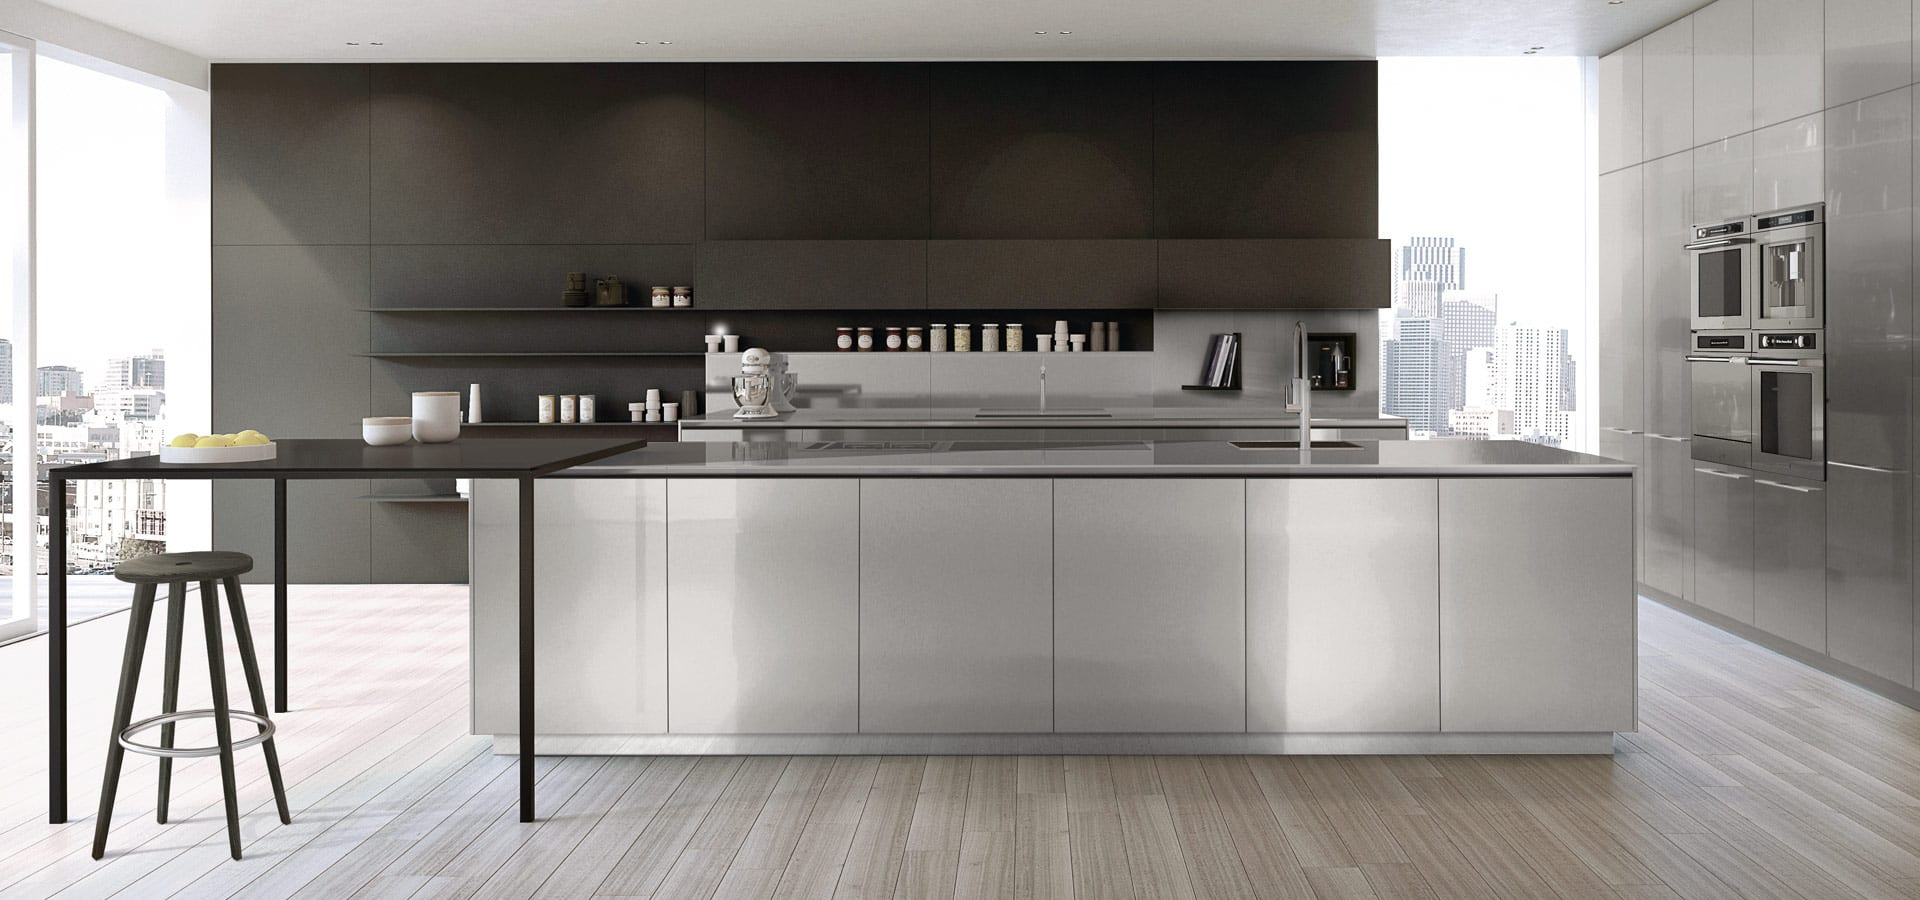 Modern European Kitchens Contemporary Kitchen Design Superior Quality